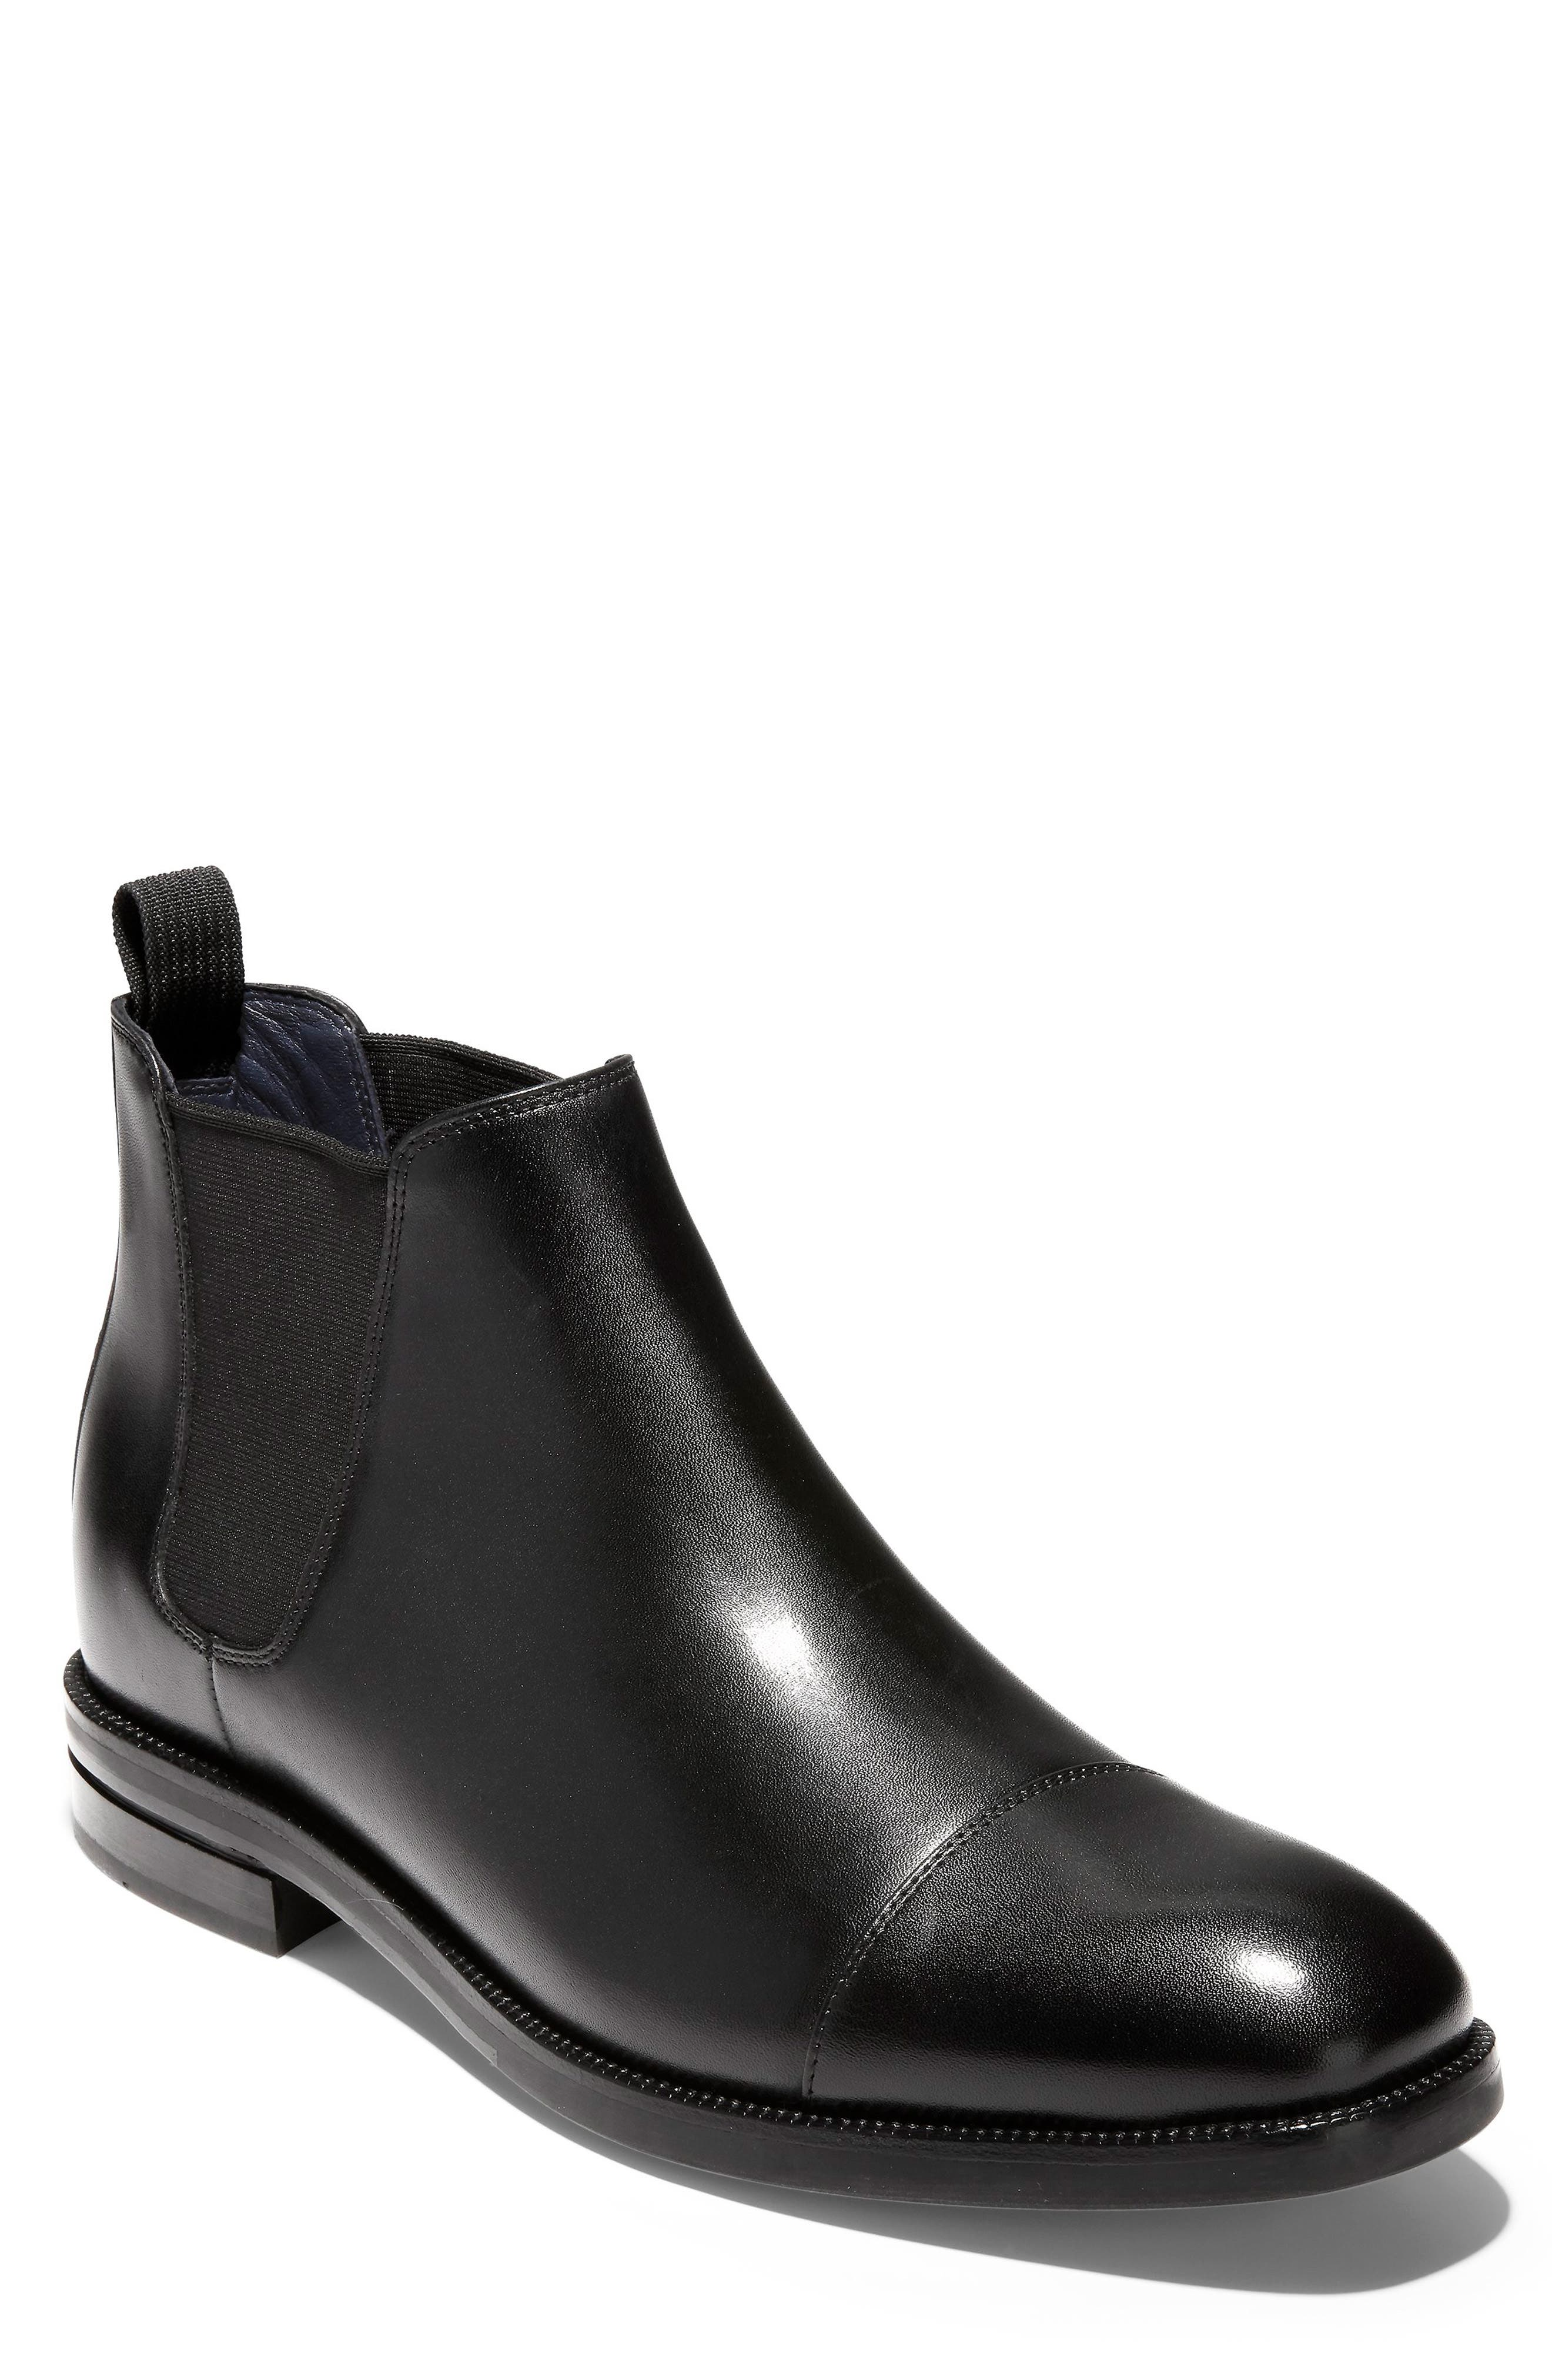 COLE HAAN, Wagner Grand Chelsea Boot, Main thumbnail 1, color, 001